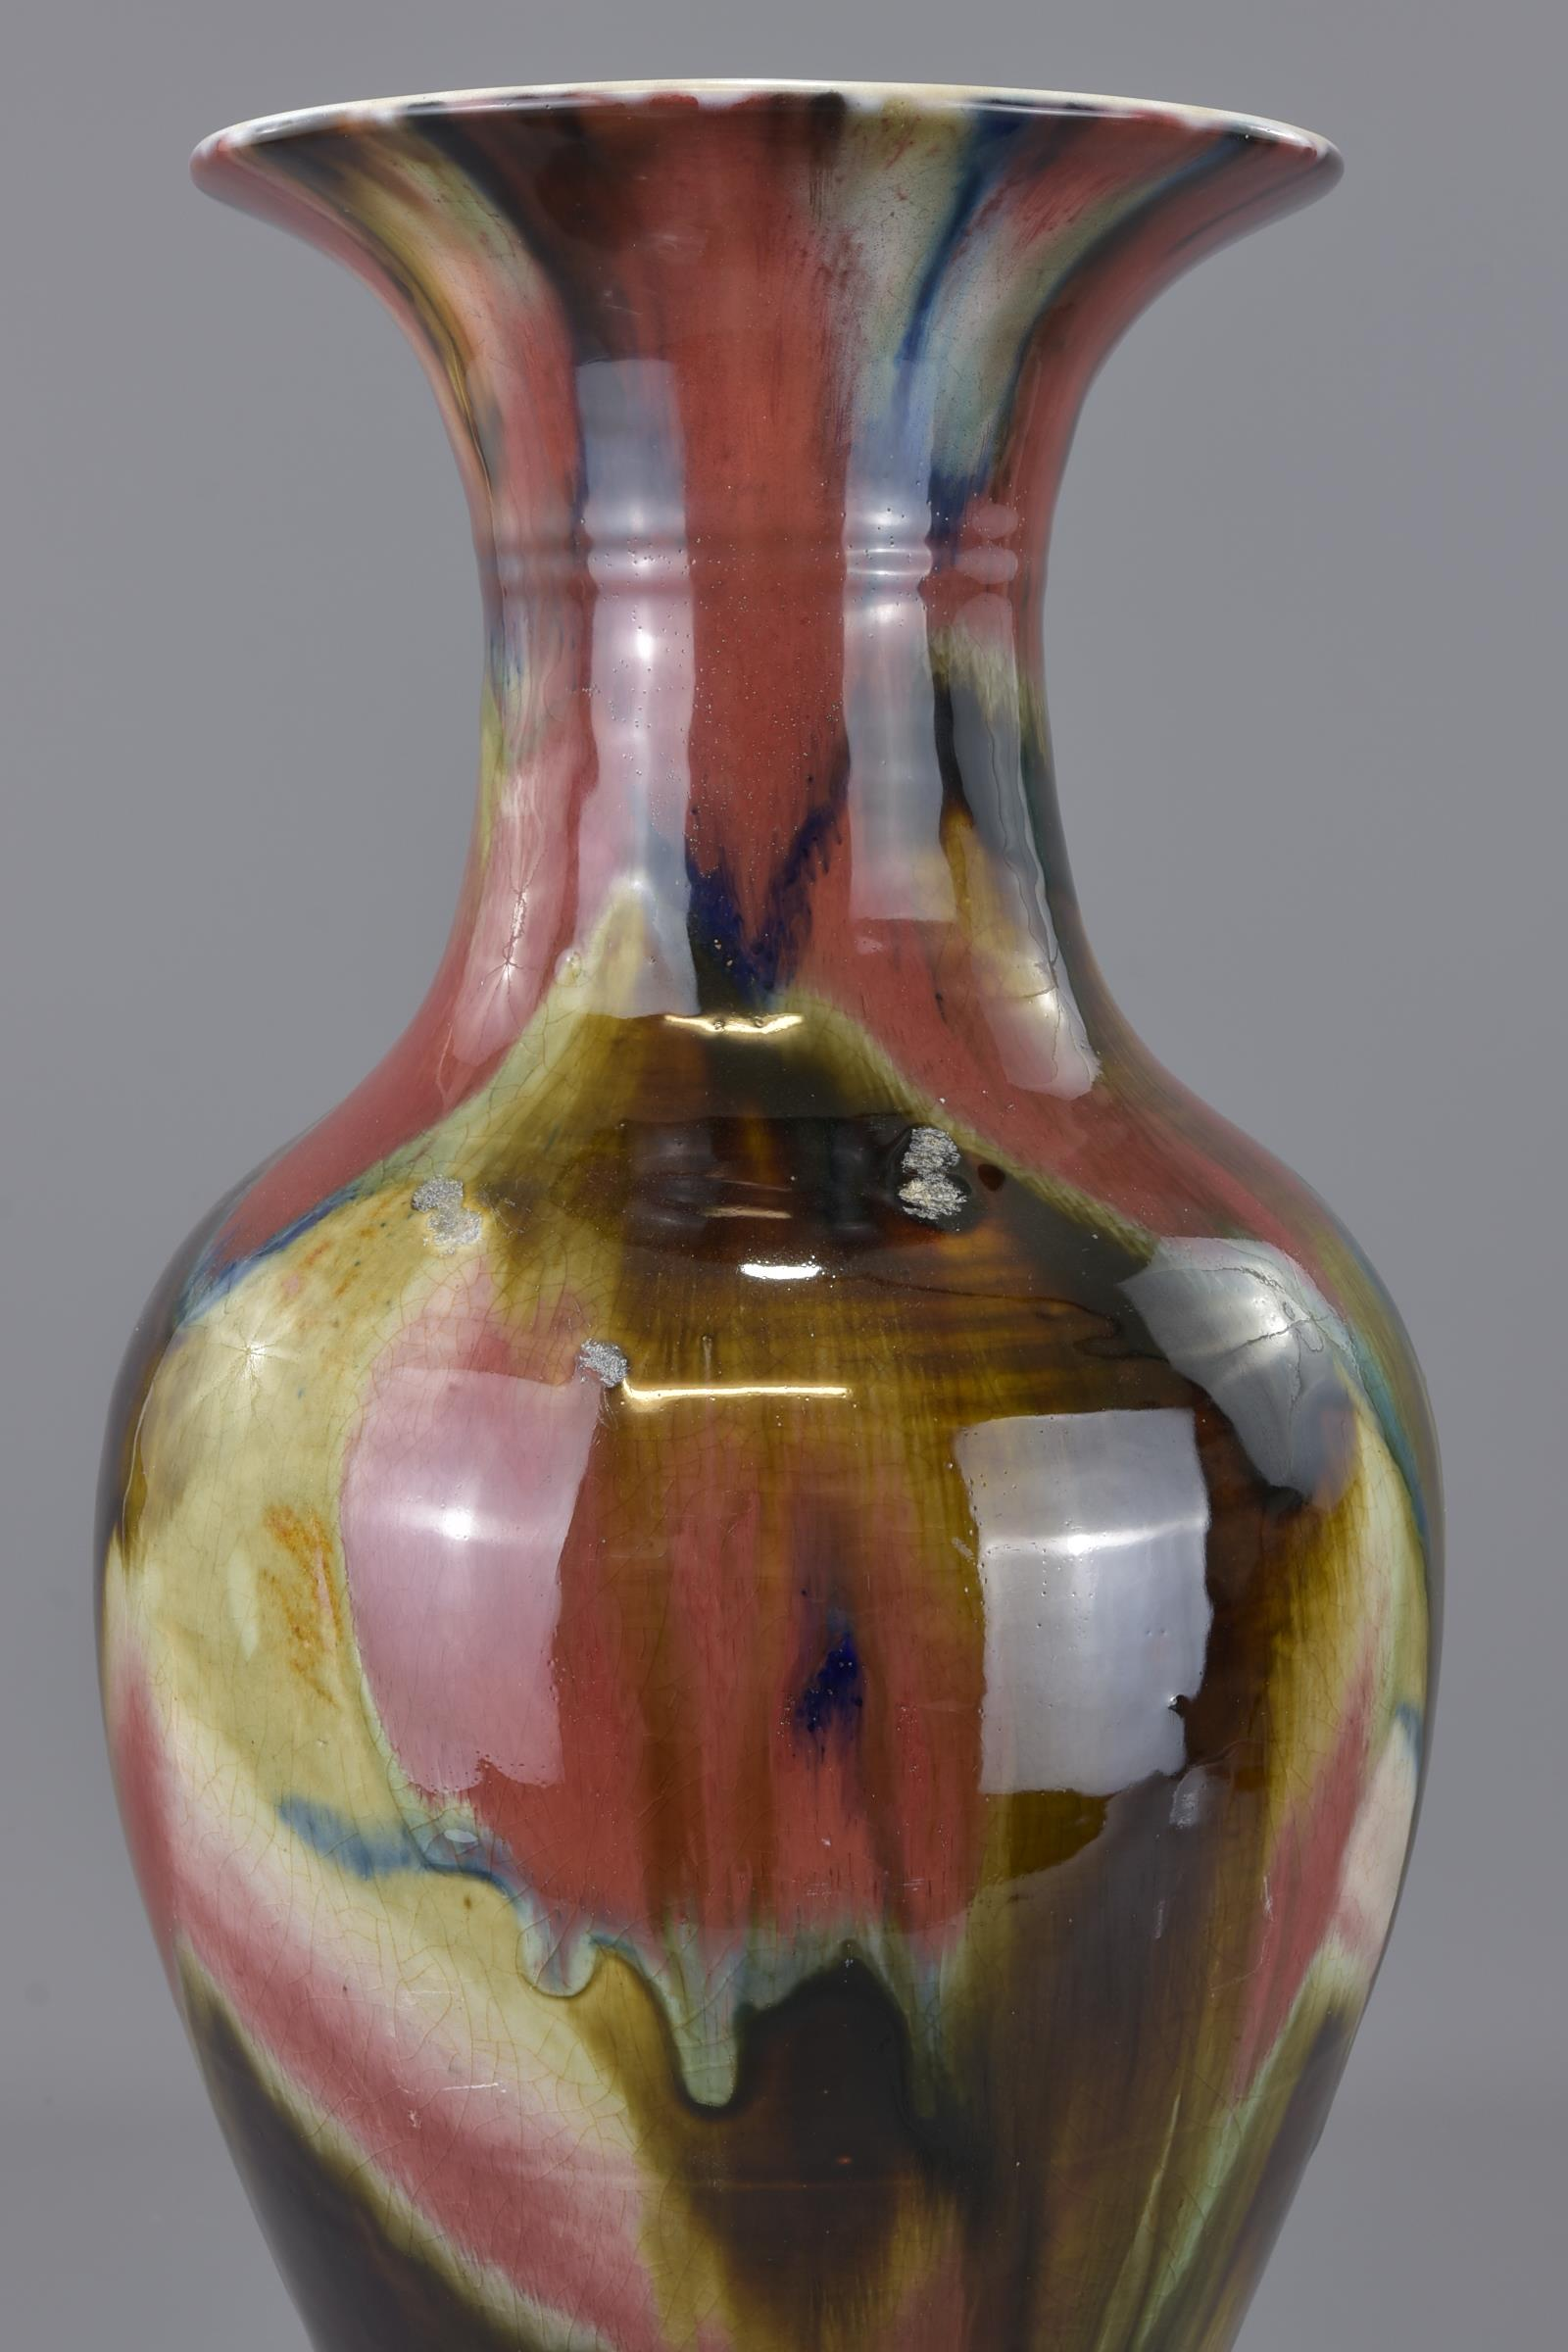 Lot 25 - A large and rare Chinese 18th century peach bloom glaze porcelain baluster vase. 53cm tall. Provenan